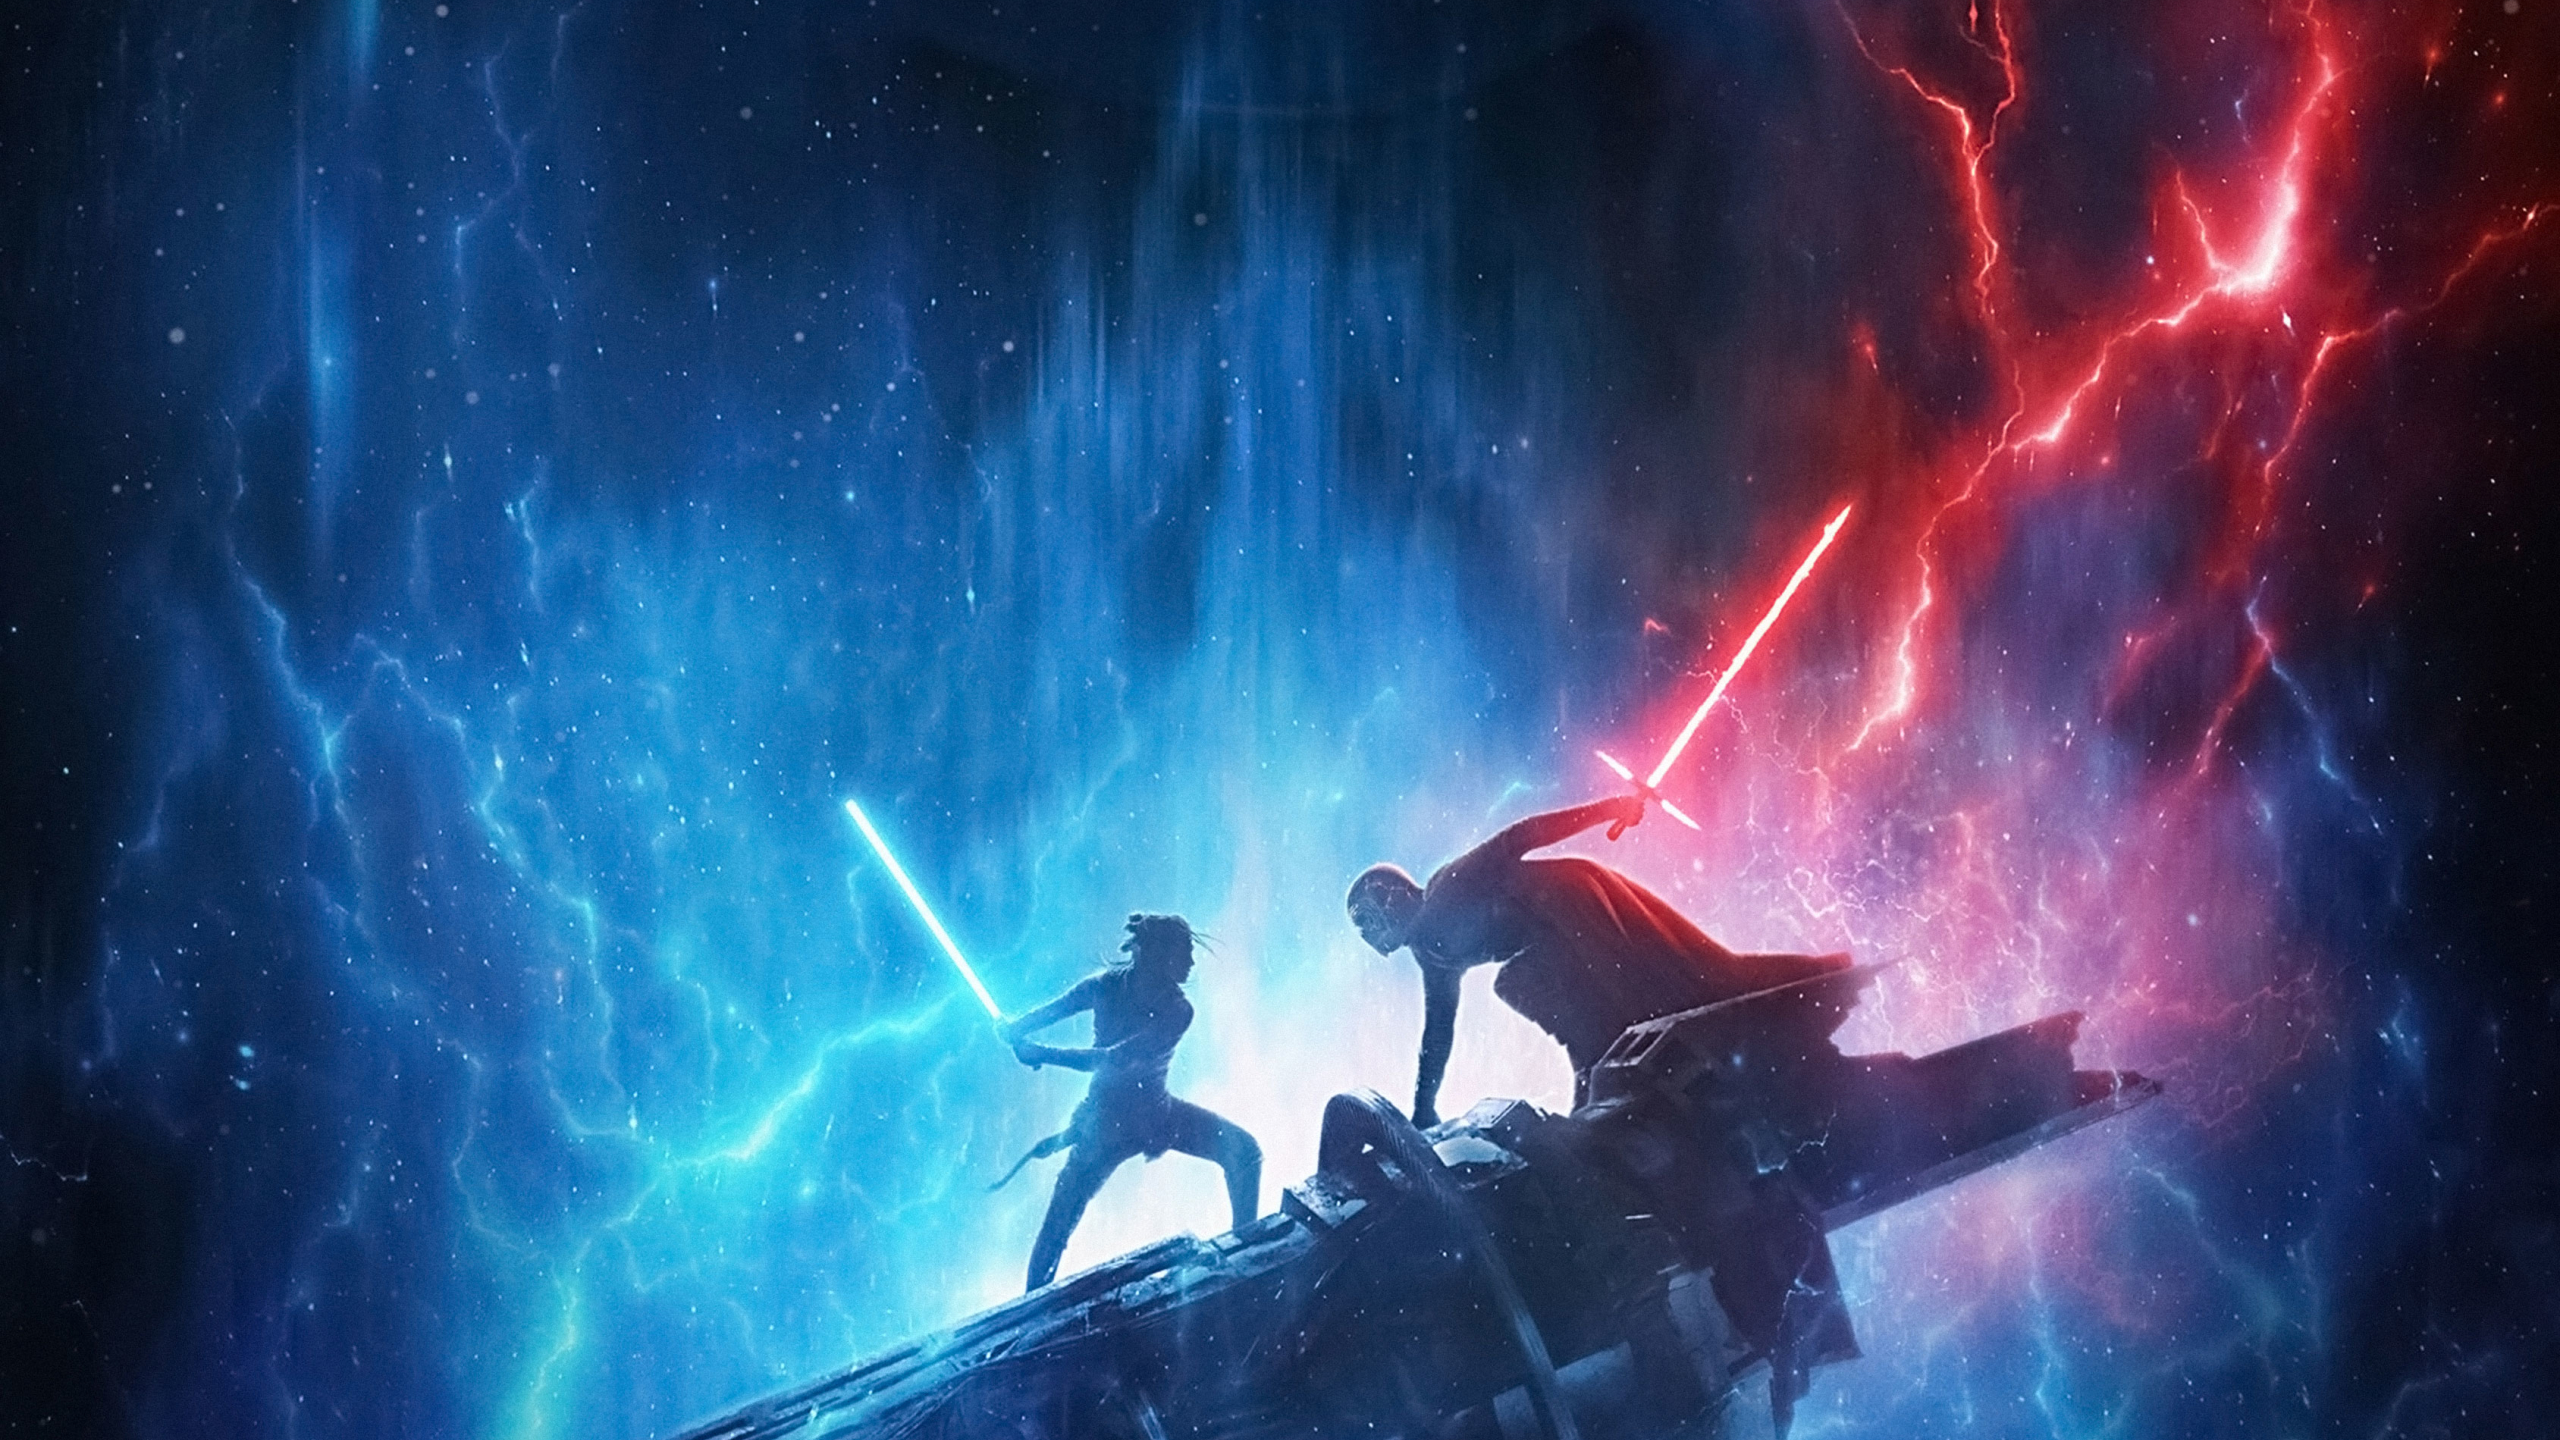 2560x1440 Star Wars The Rise Of Skywalker 1440p Resolution Wallpaper Hd Movies 4k Wallpapers Images Photos And Background